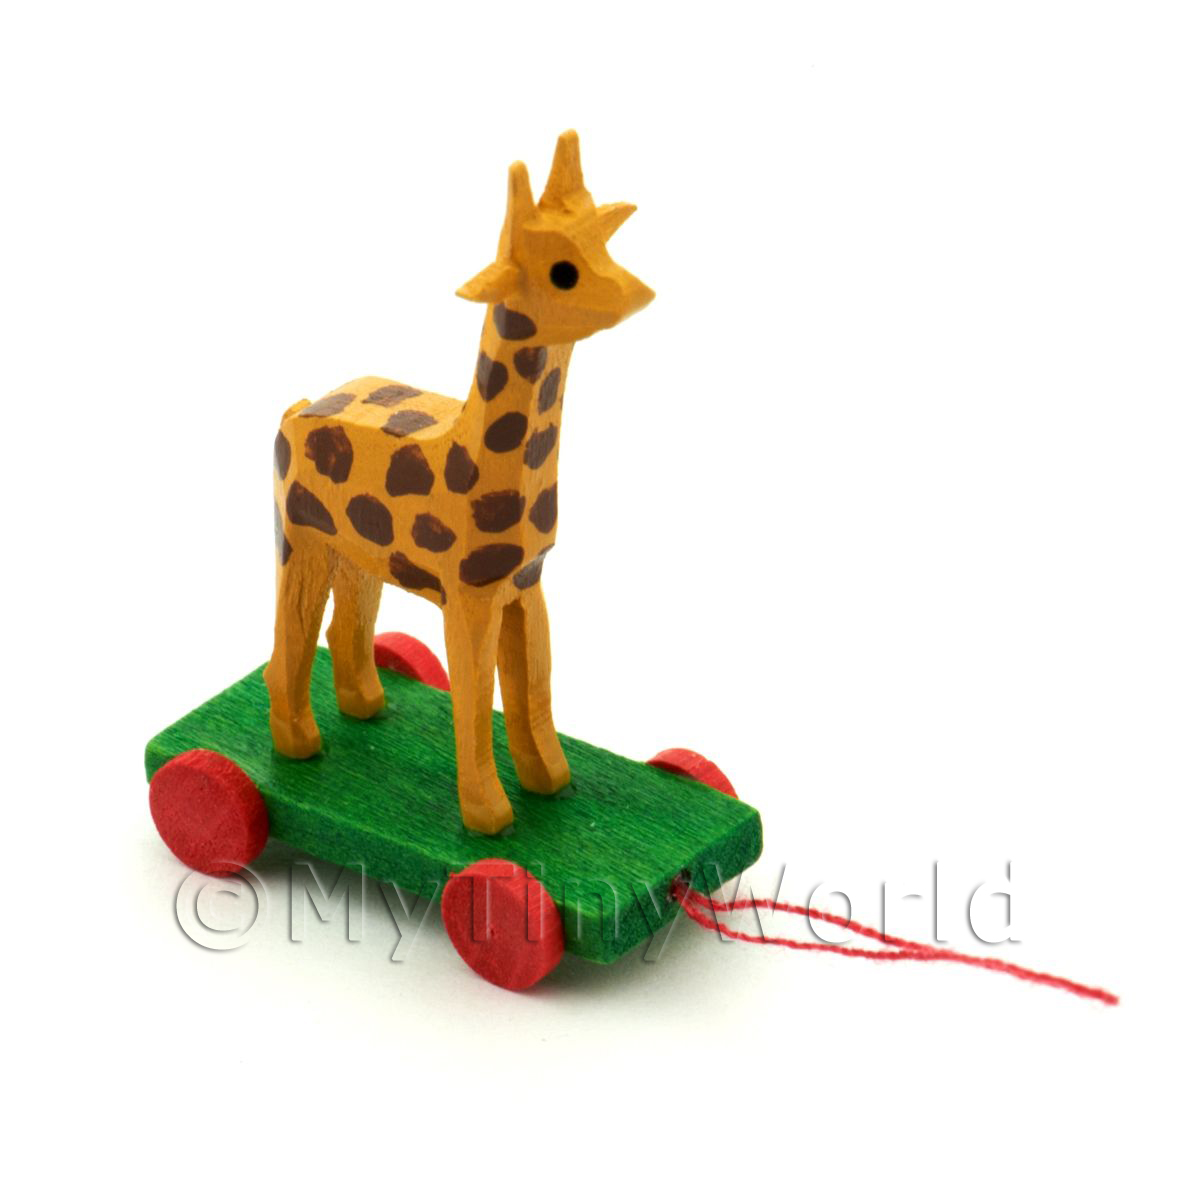 Dolls House Miniature Large German Pull-Along Giraffe